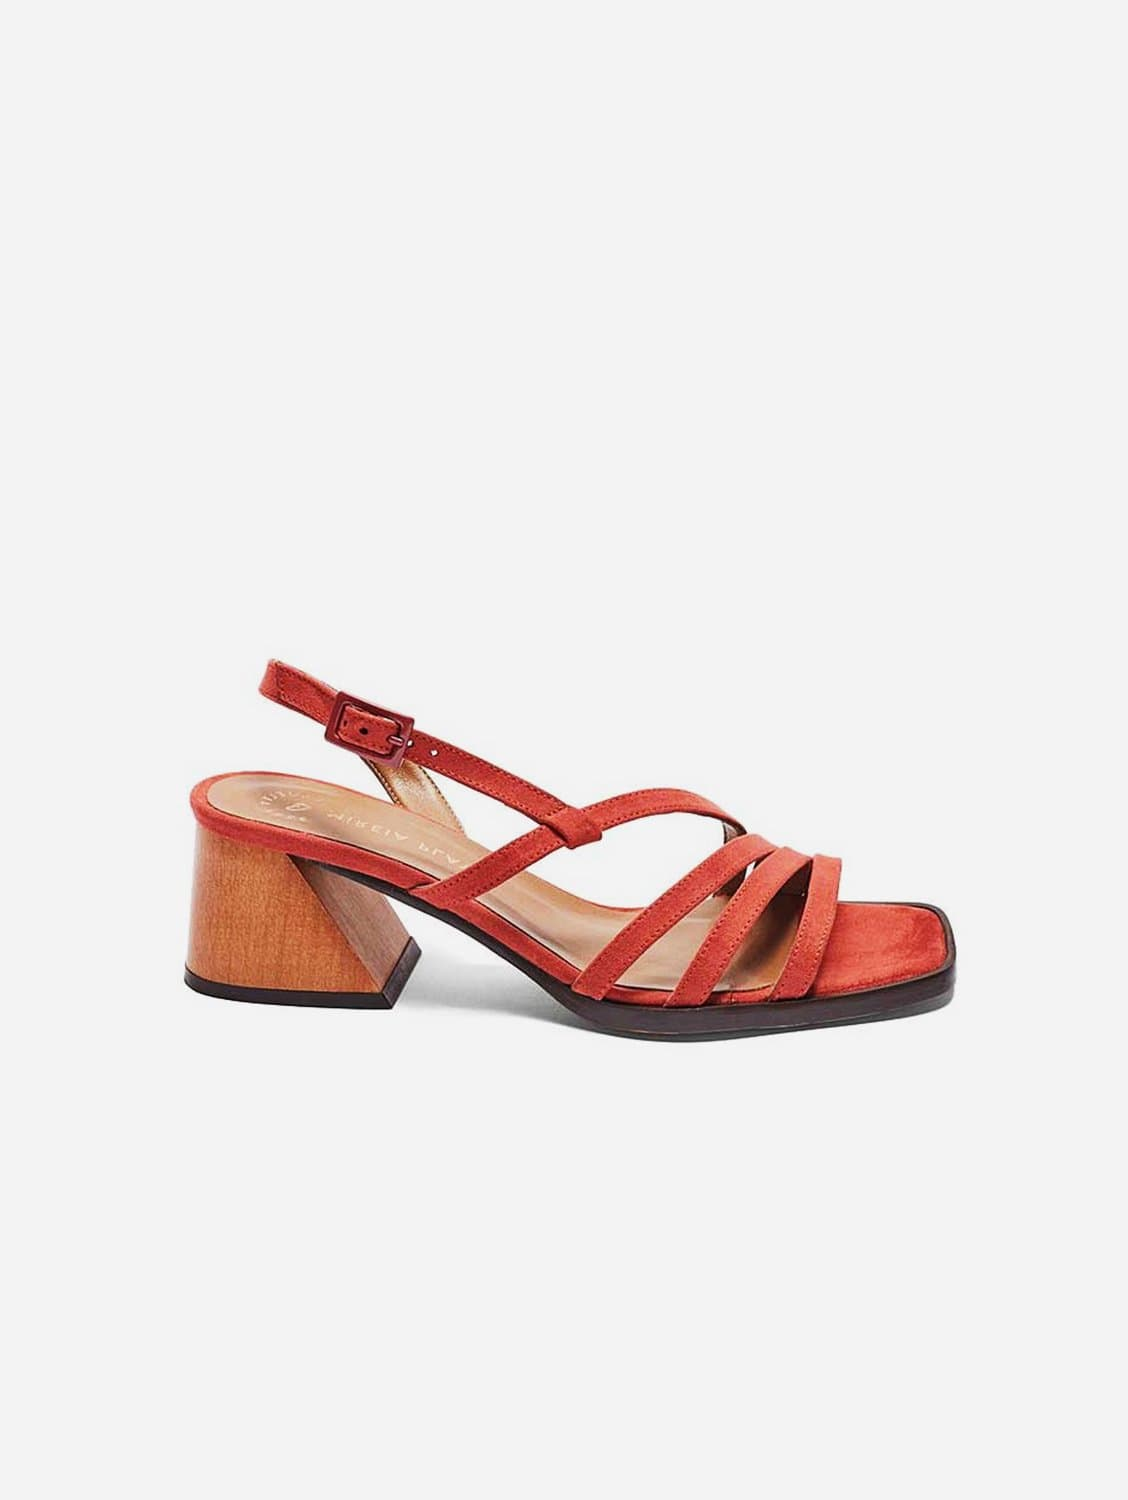 Hippy Recycled Polyester Vegan Suede Heeled Sandal | Watermelon